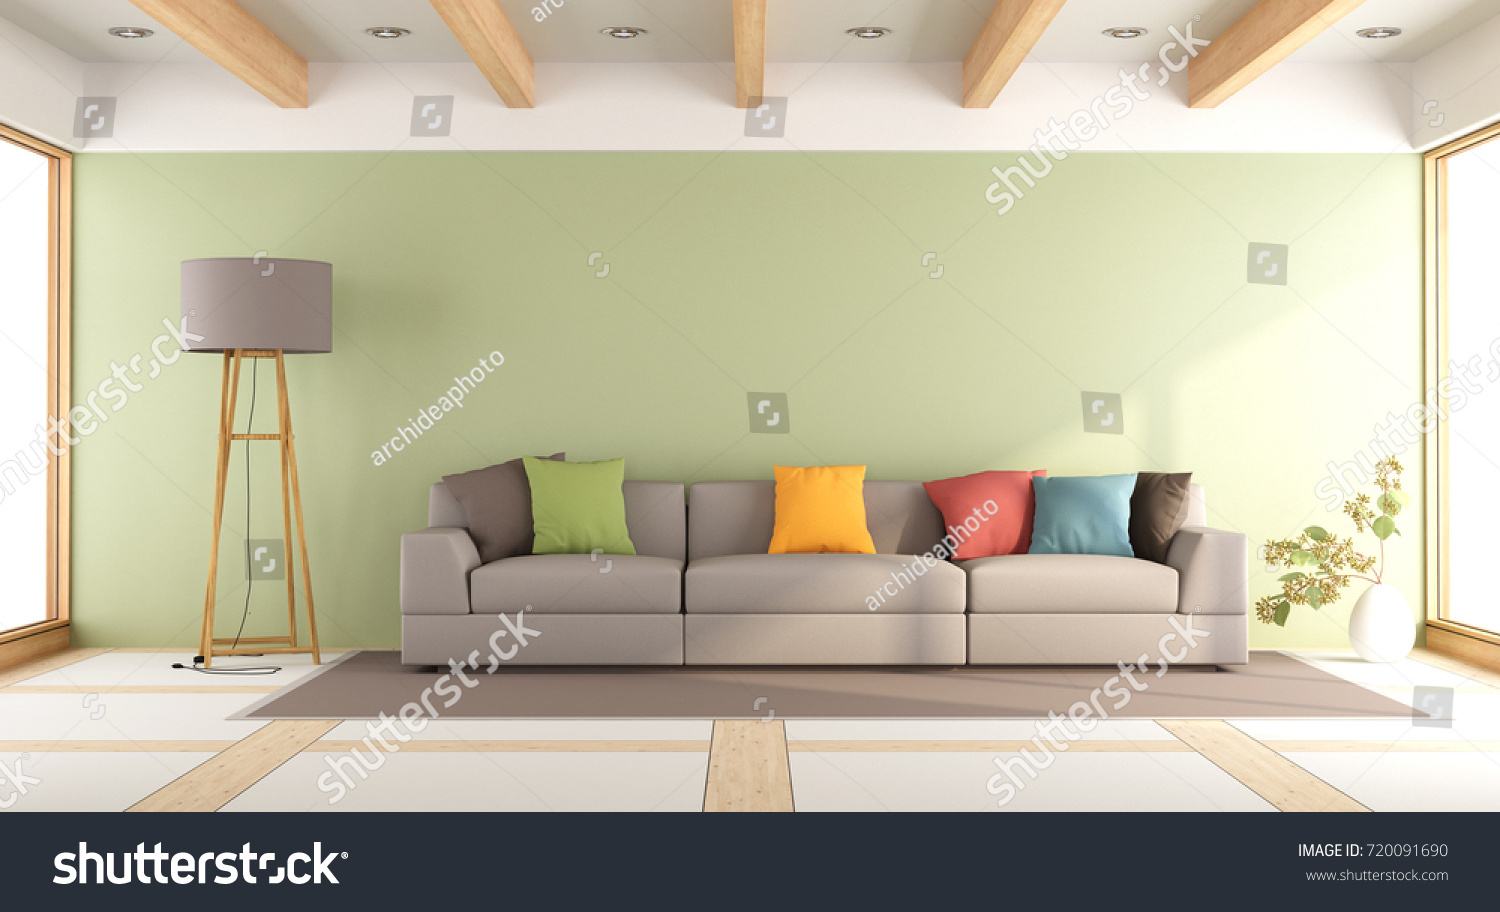 Modern Living Room With Green Wall And Colorful Sofa